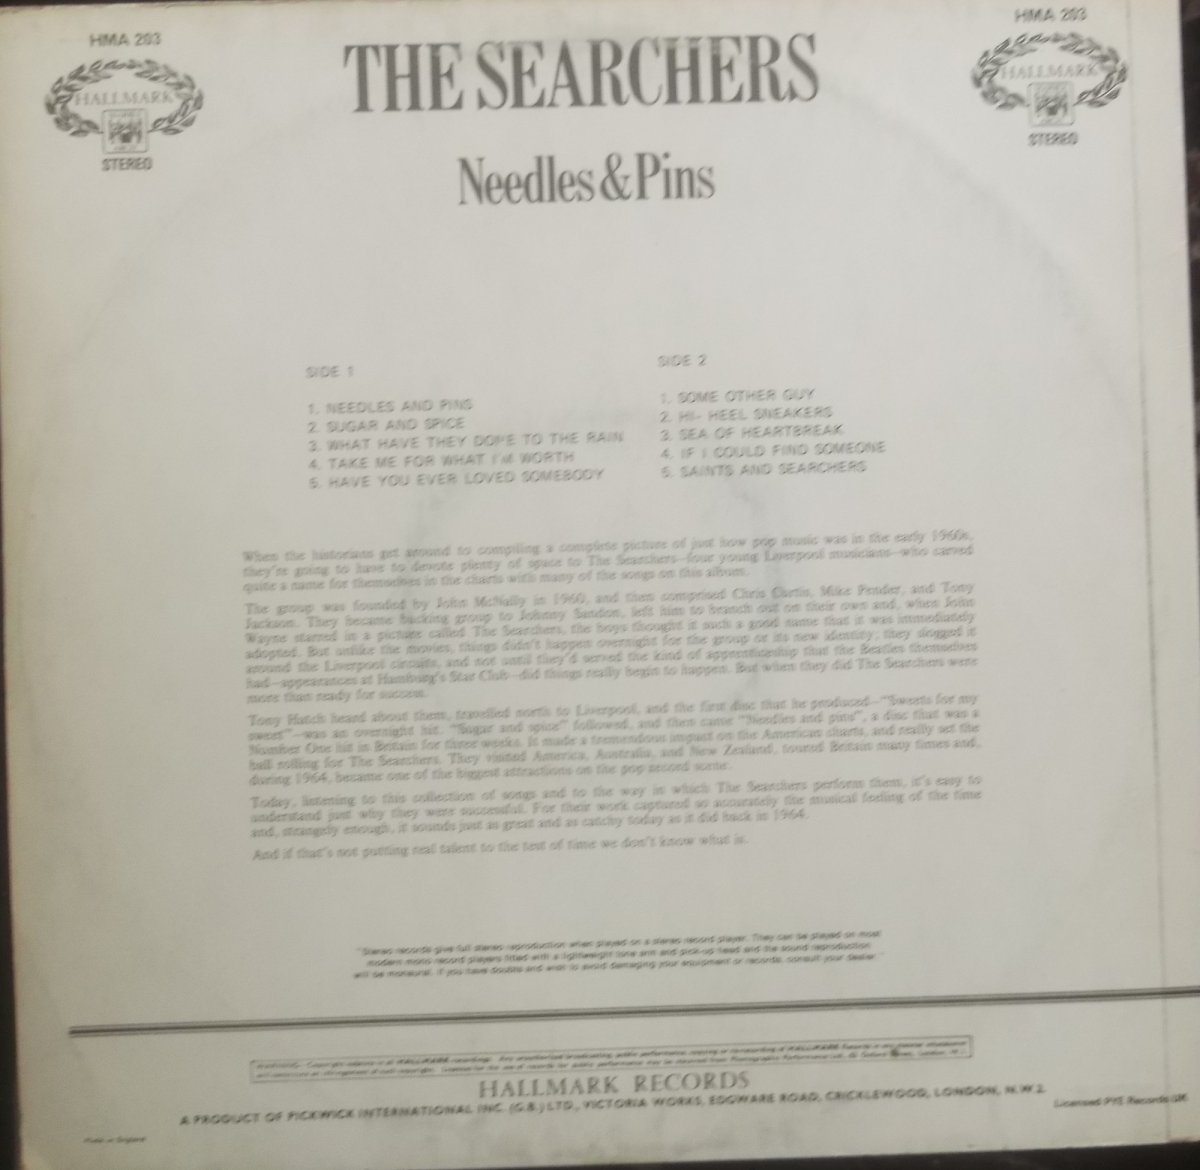 The Searchers – Needles & Pins